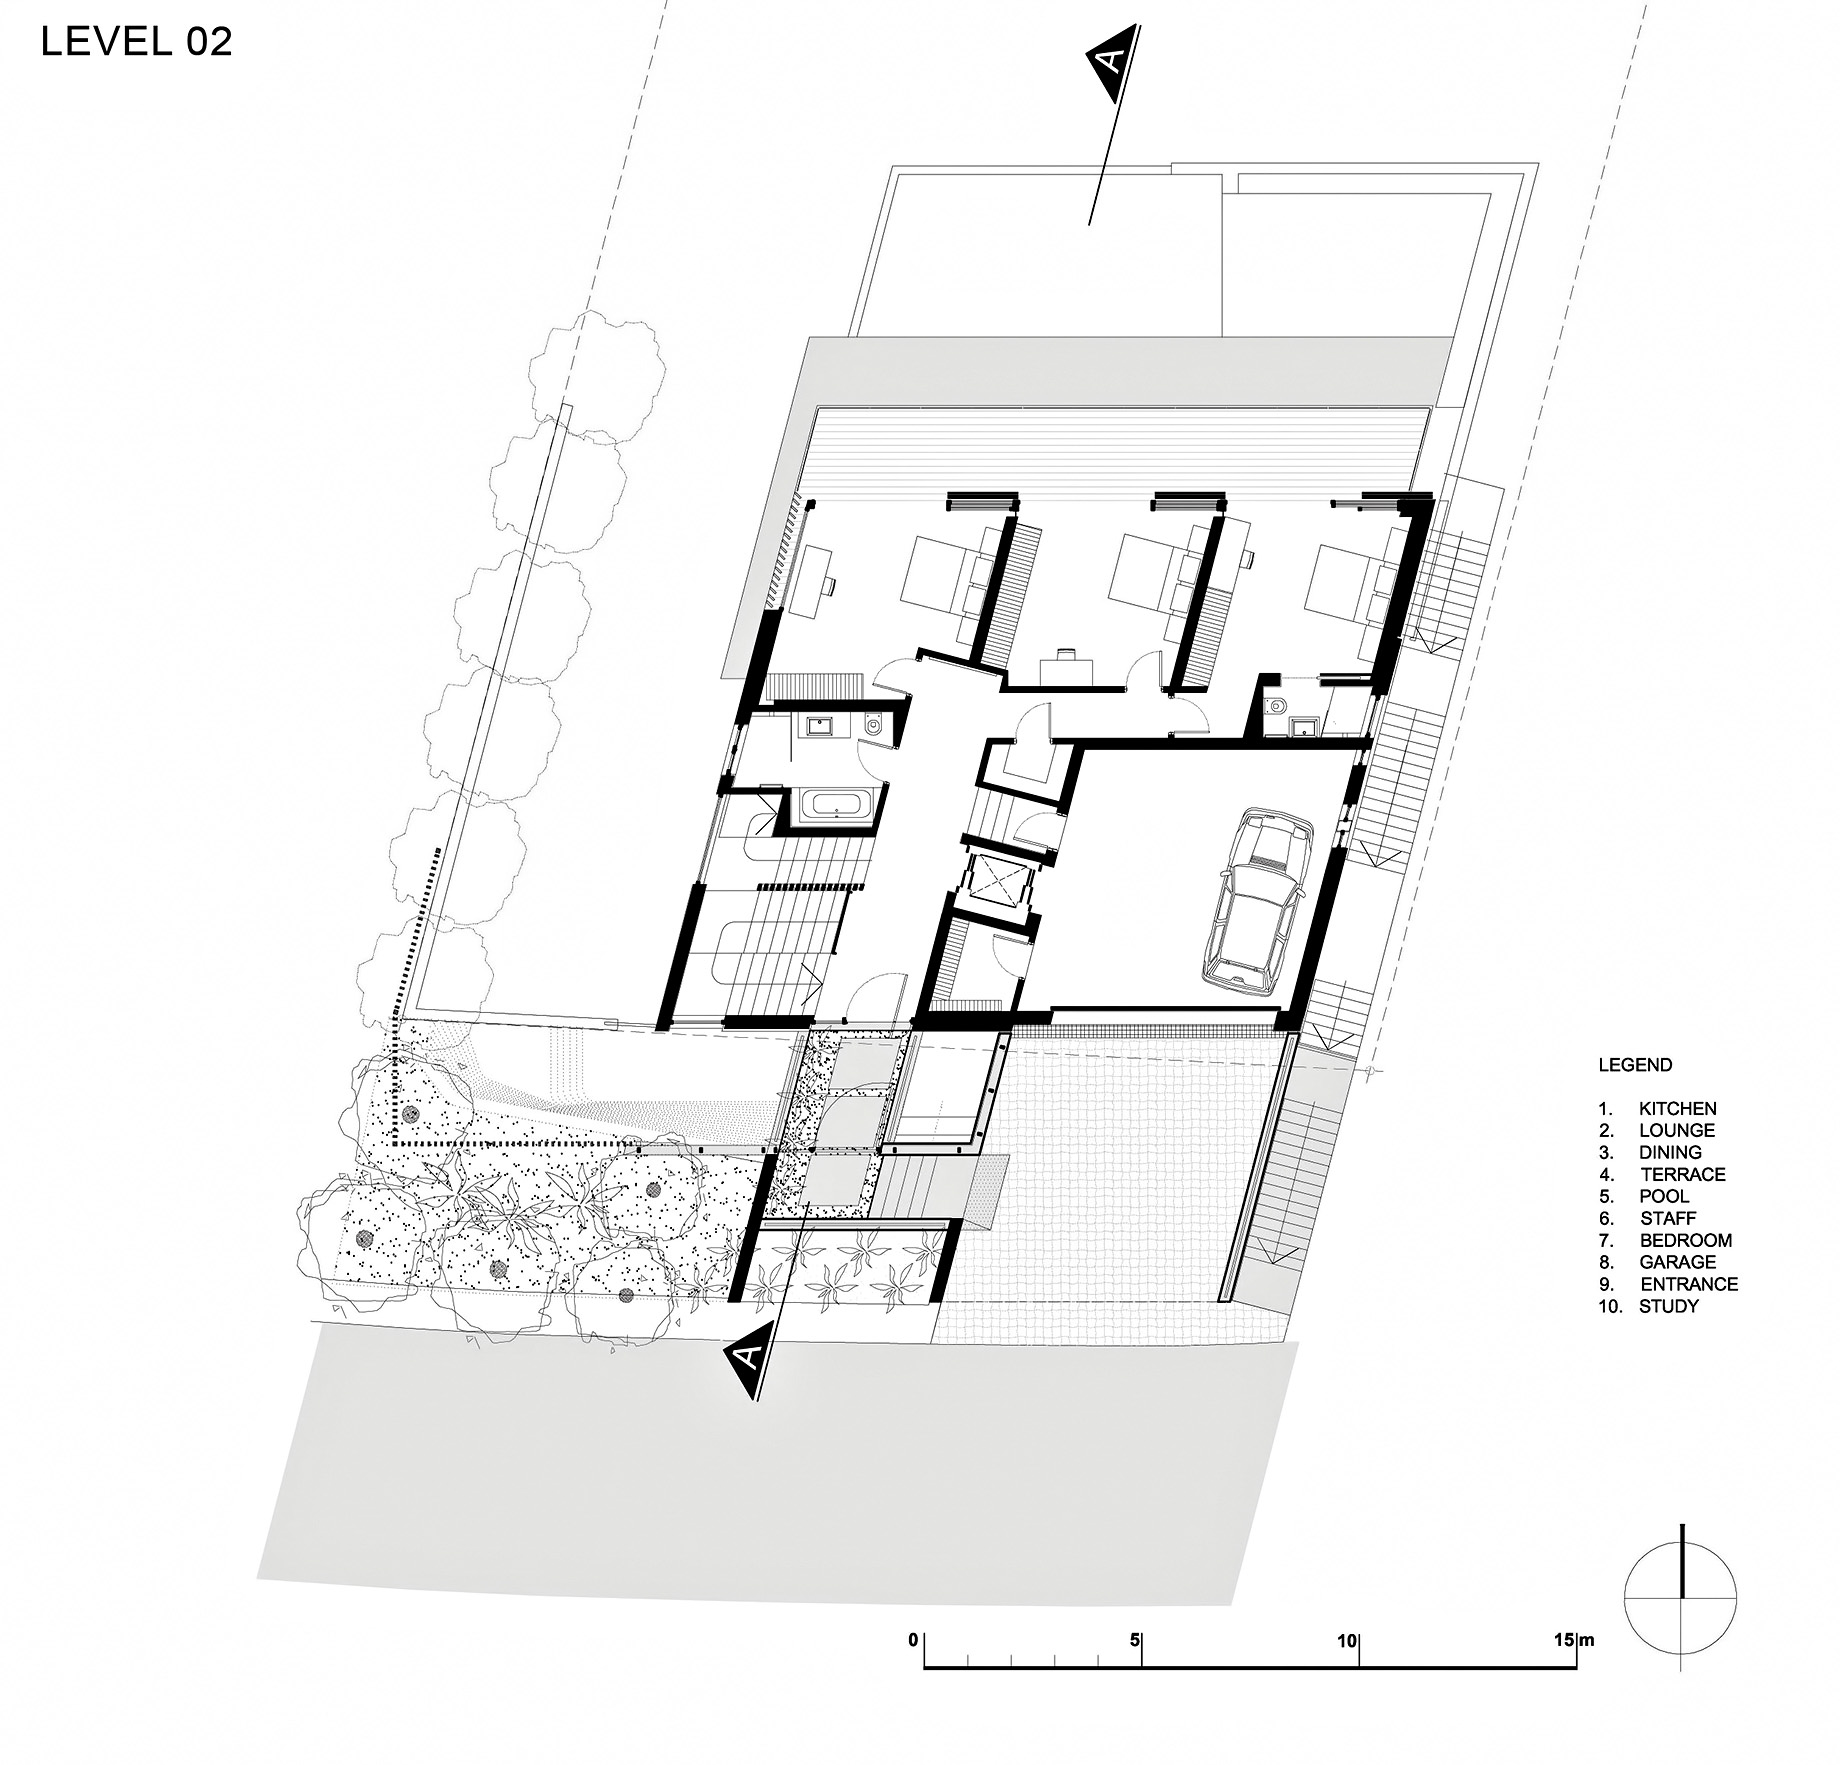 Floor Plans - Level 2 - Head Road 1816 - Fresnaye, Cape Town, Western Cape, South Africa